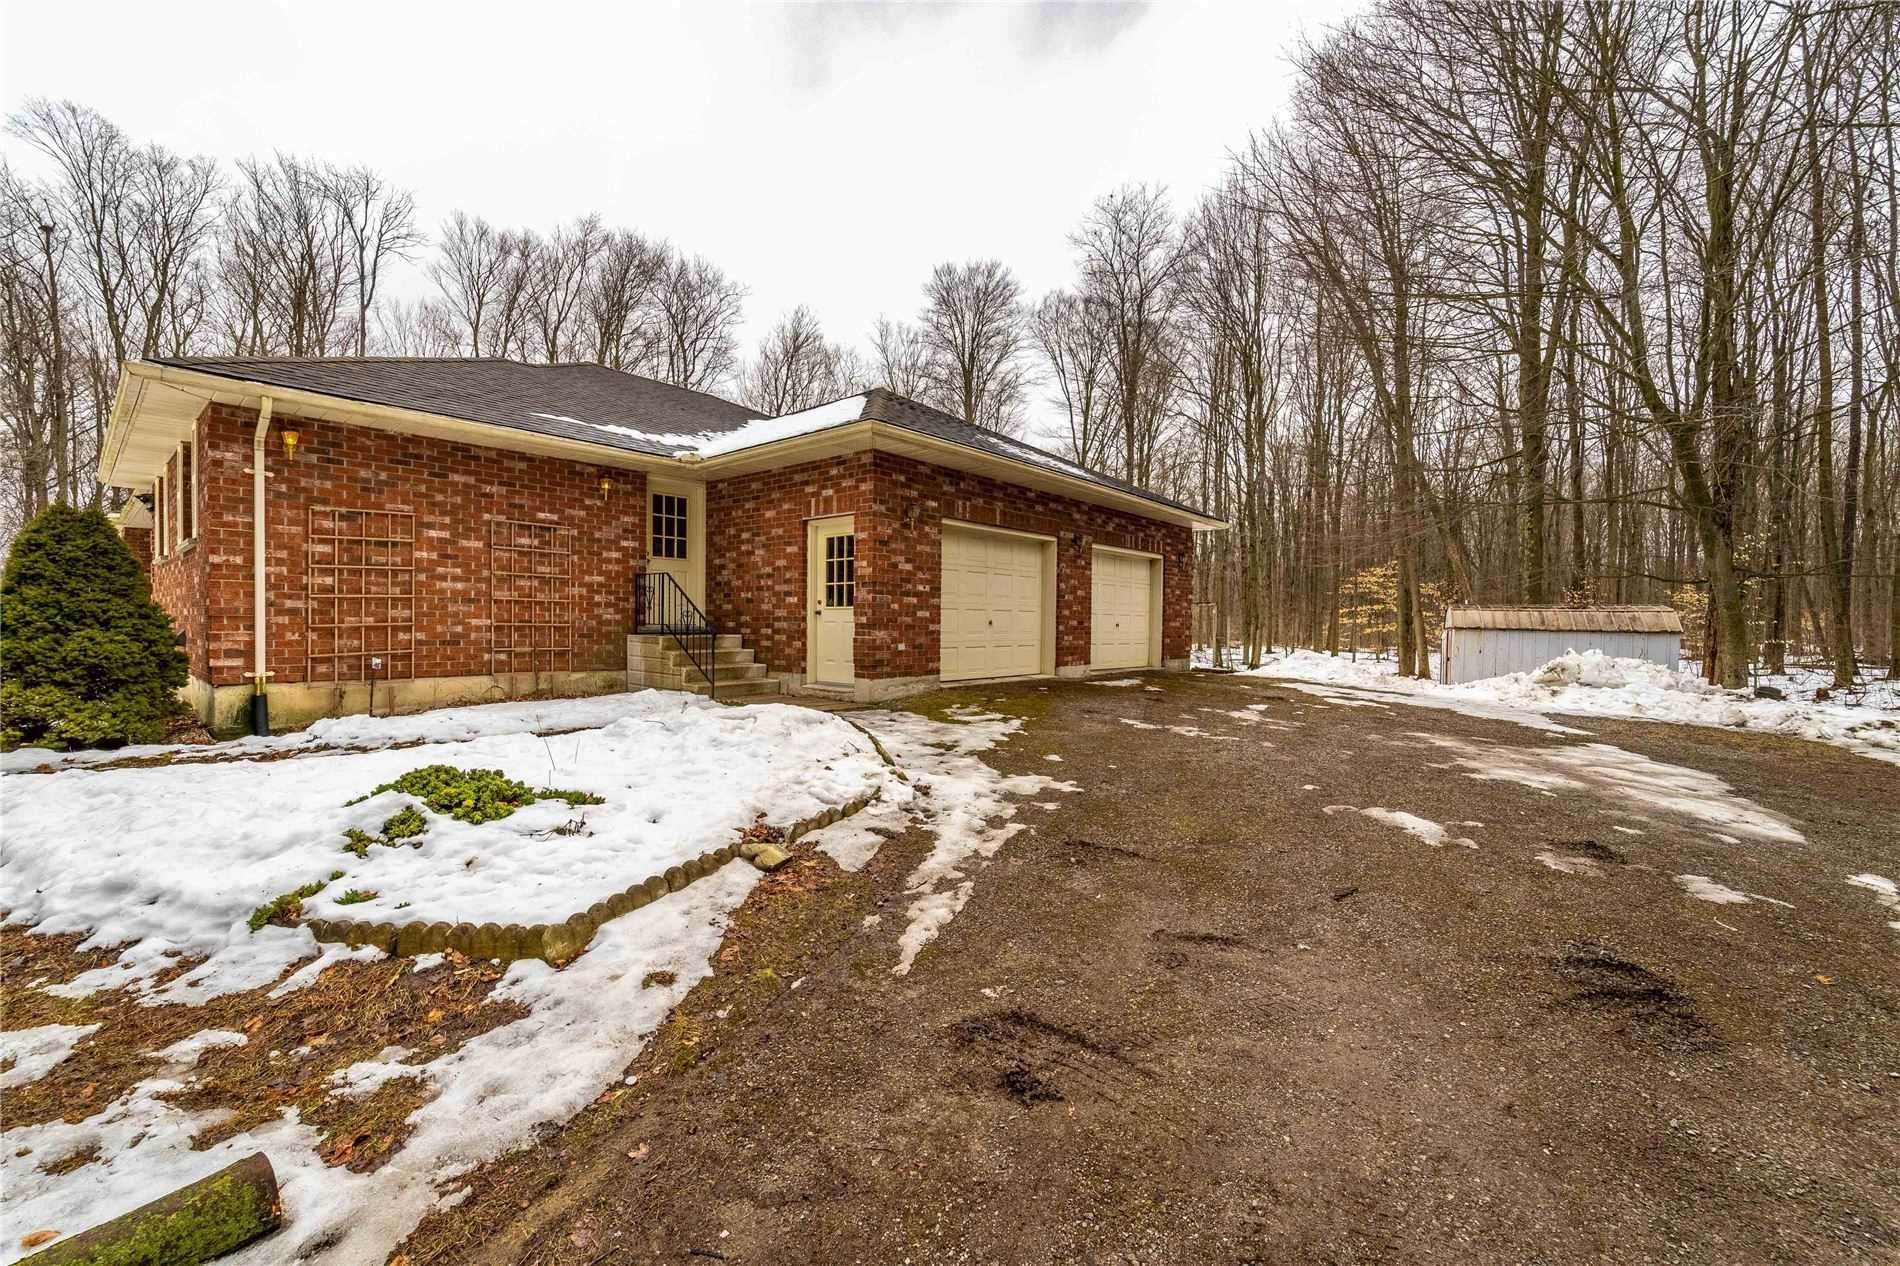 Photo 15: Photos: 918 Windham12 Road in Norfolk: Simcoe House (Bungalow) for sale : MLS®# X4707719